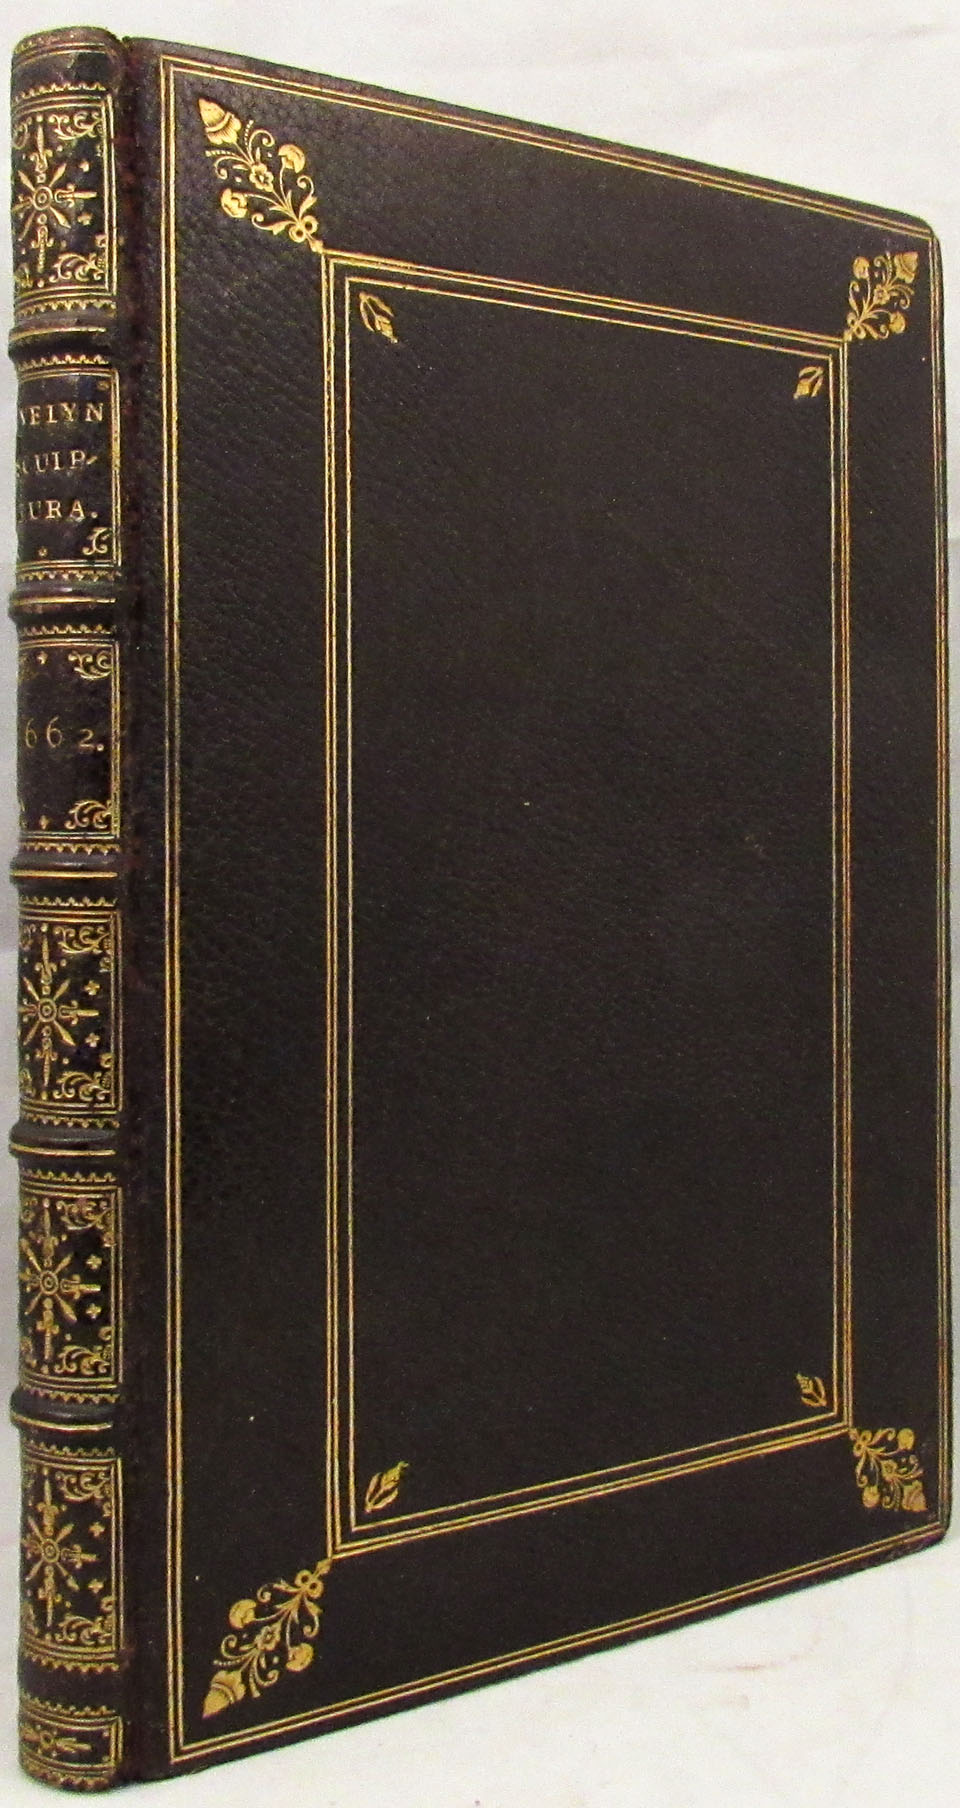 SCULPTURA: Or the History, and Art of Chalcography and Engraving in Copper. To Which Is Annexed a New Manner of Engraving, or Mezzo Tinto, Communicated by His Highness Prince Rupert to the Author of This Treatise. John Evelyn.